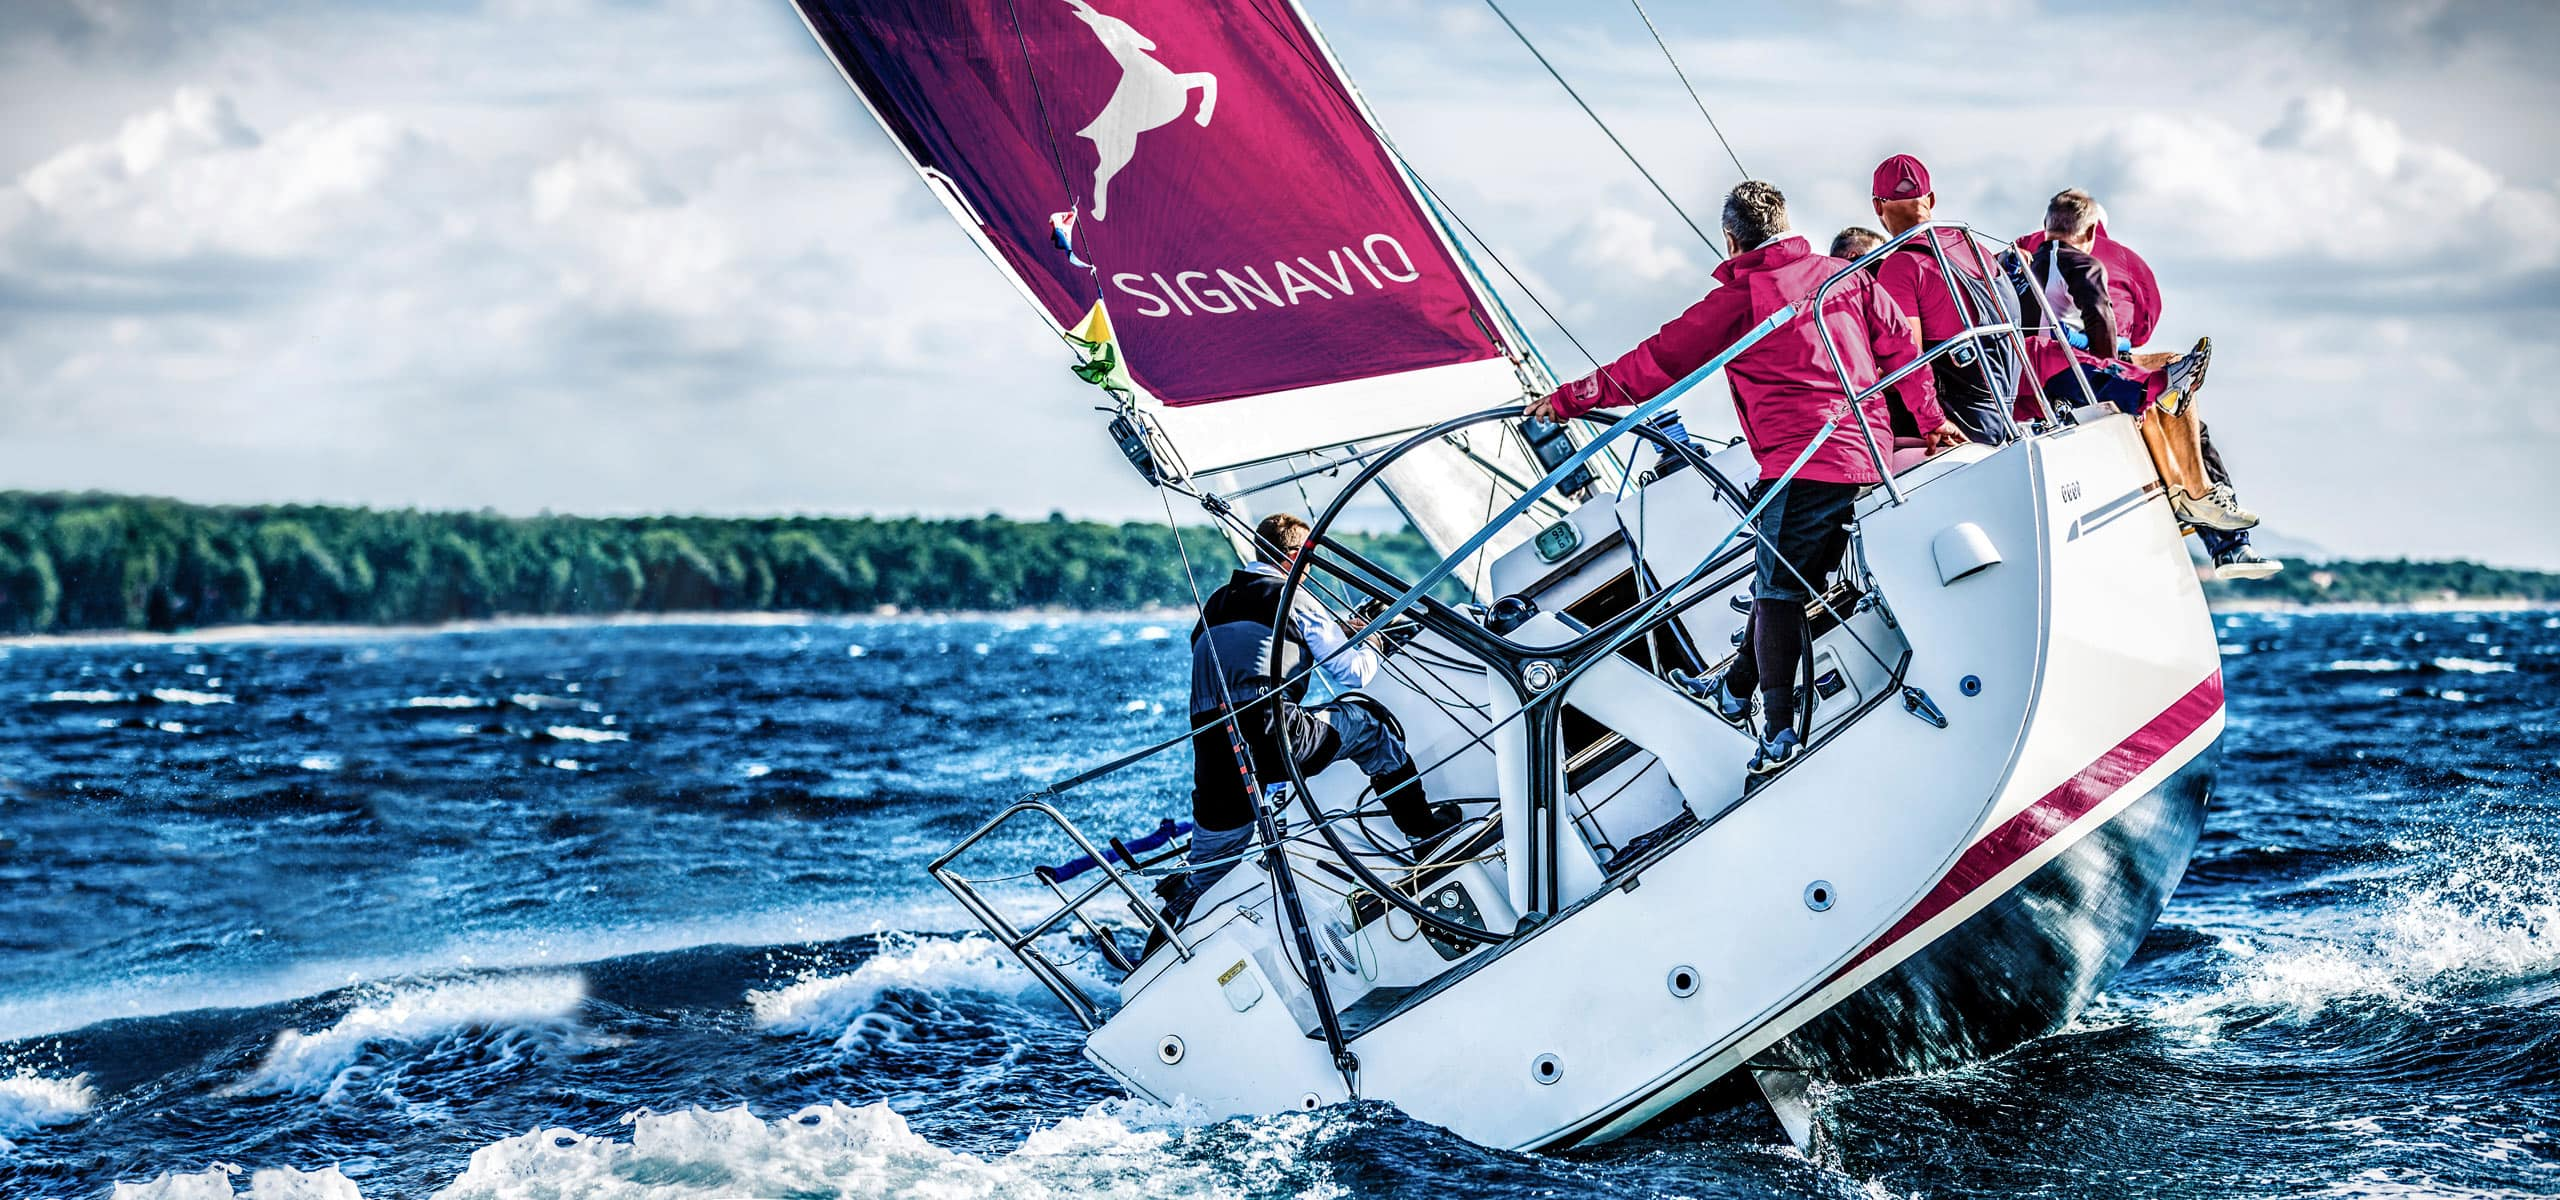 Wie Business Decision Manage­ment die Organi­sation einer Segel­regatta vereinfacht.